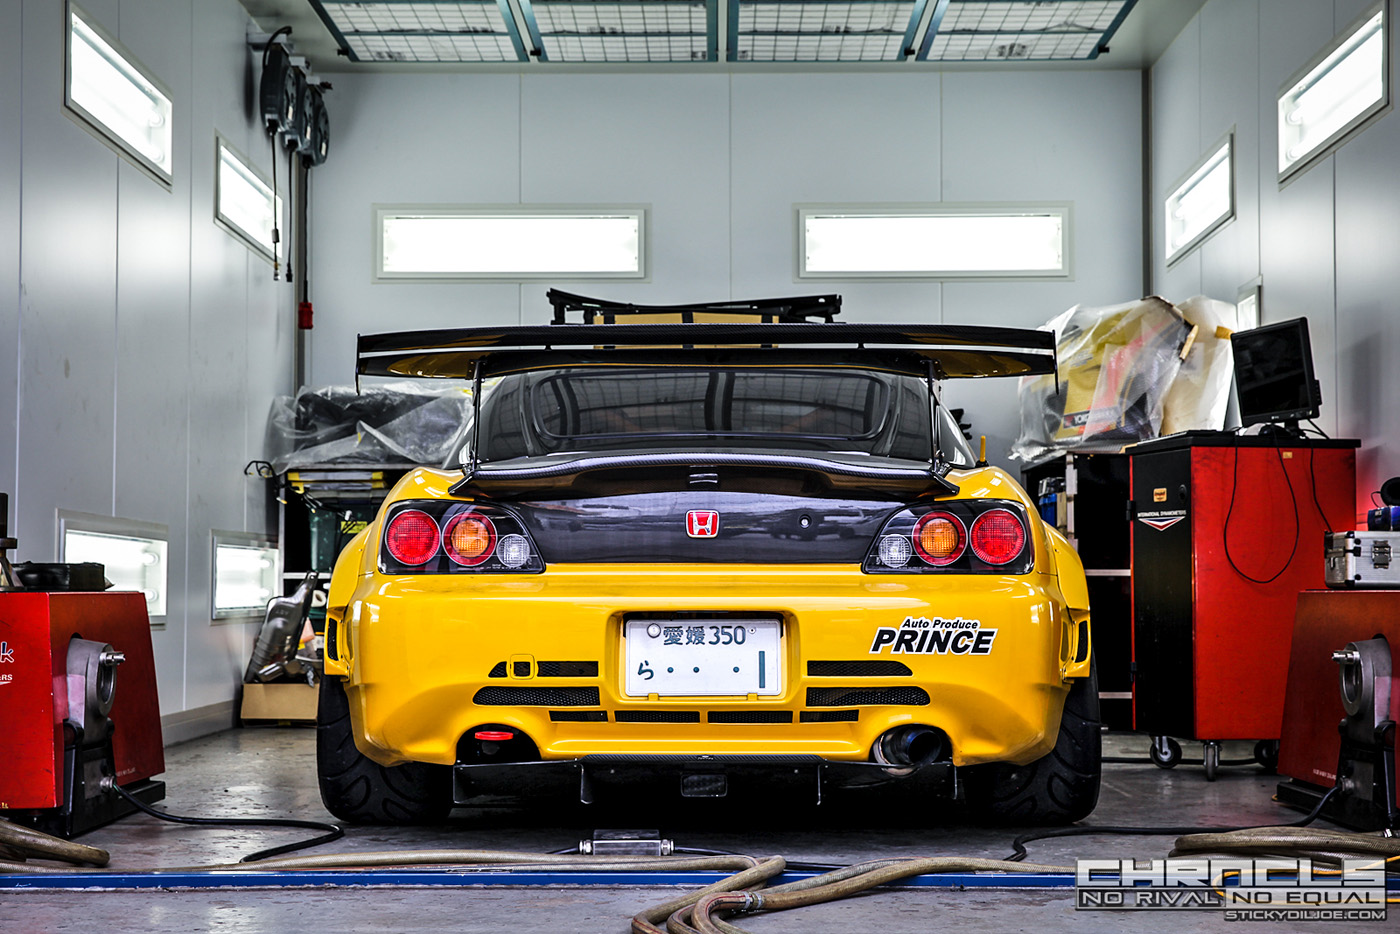 The Chronicles Osaka 2015 Coverage…Part 5: J's Racing and The End of Our Japan Trip…